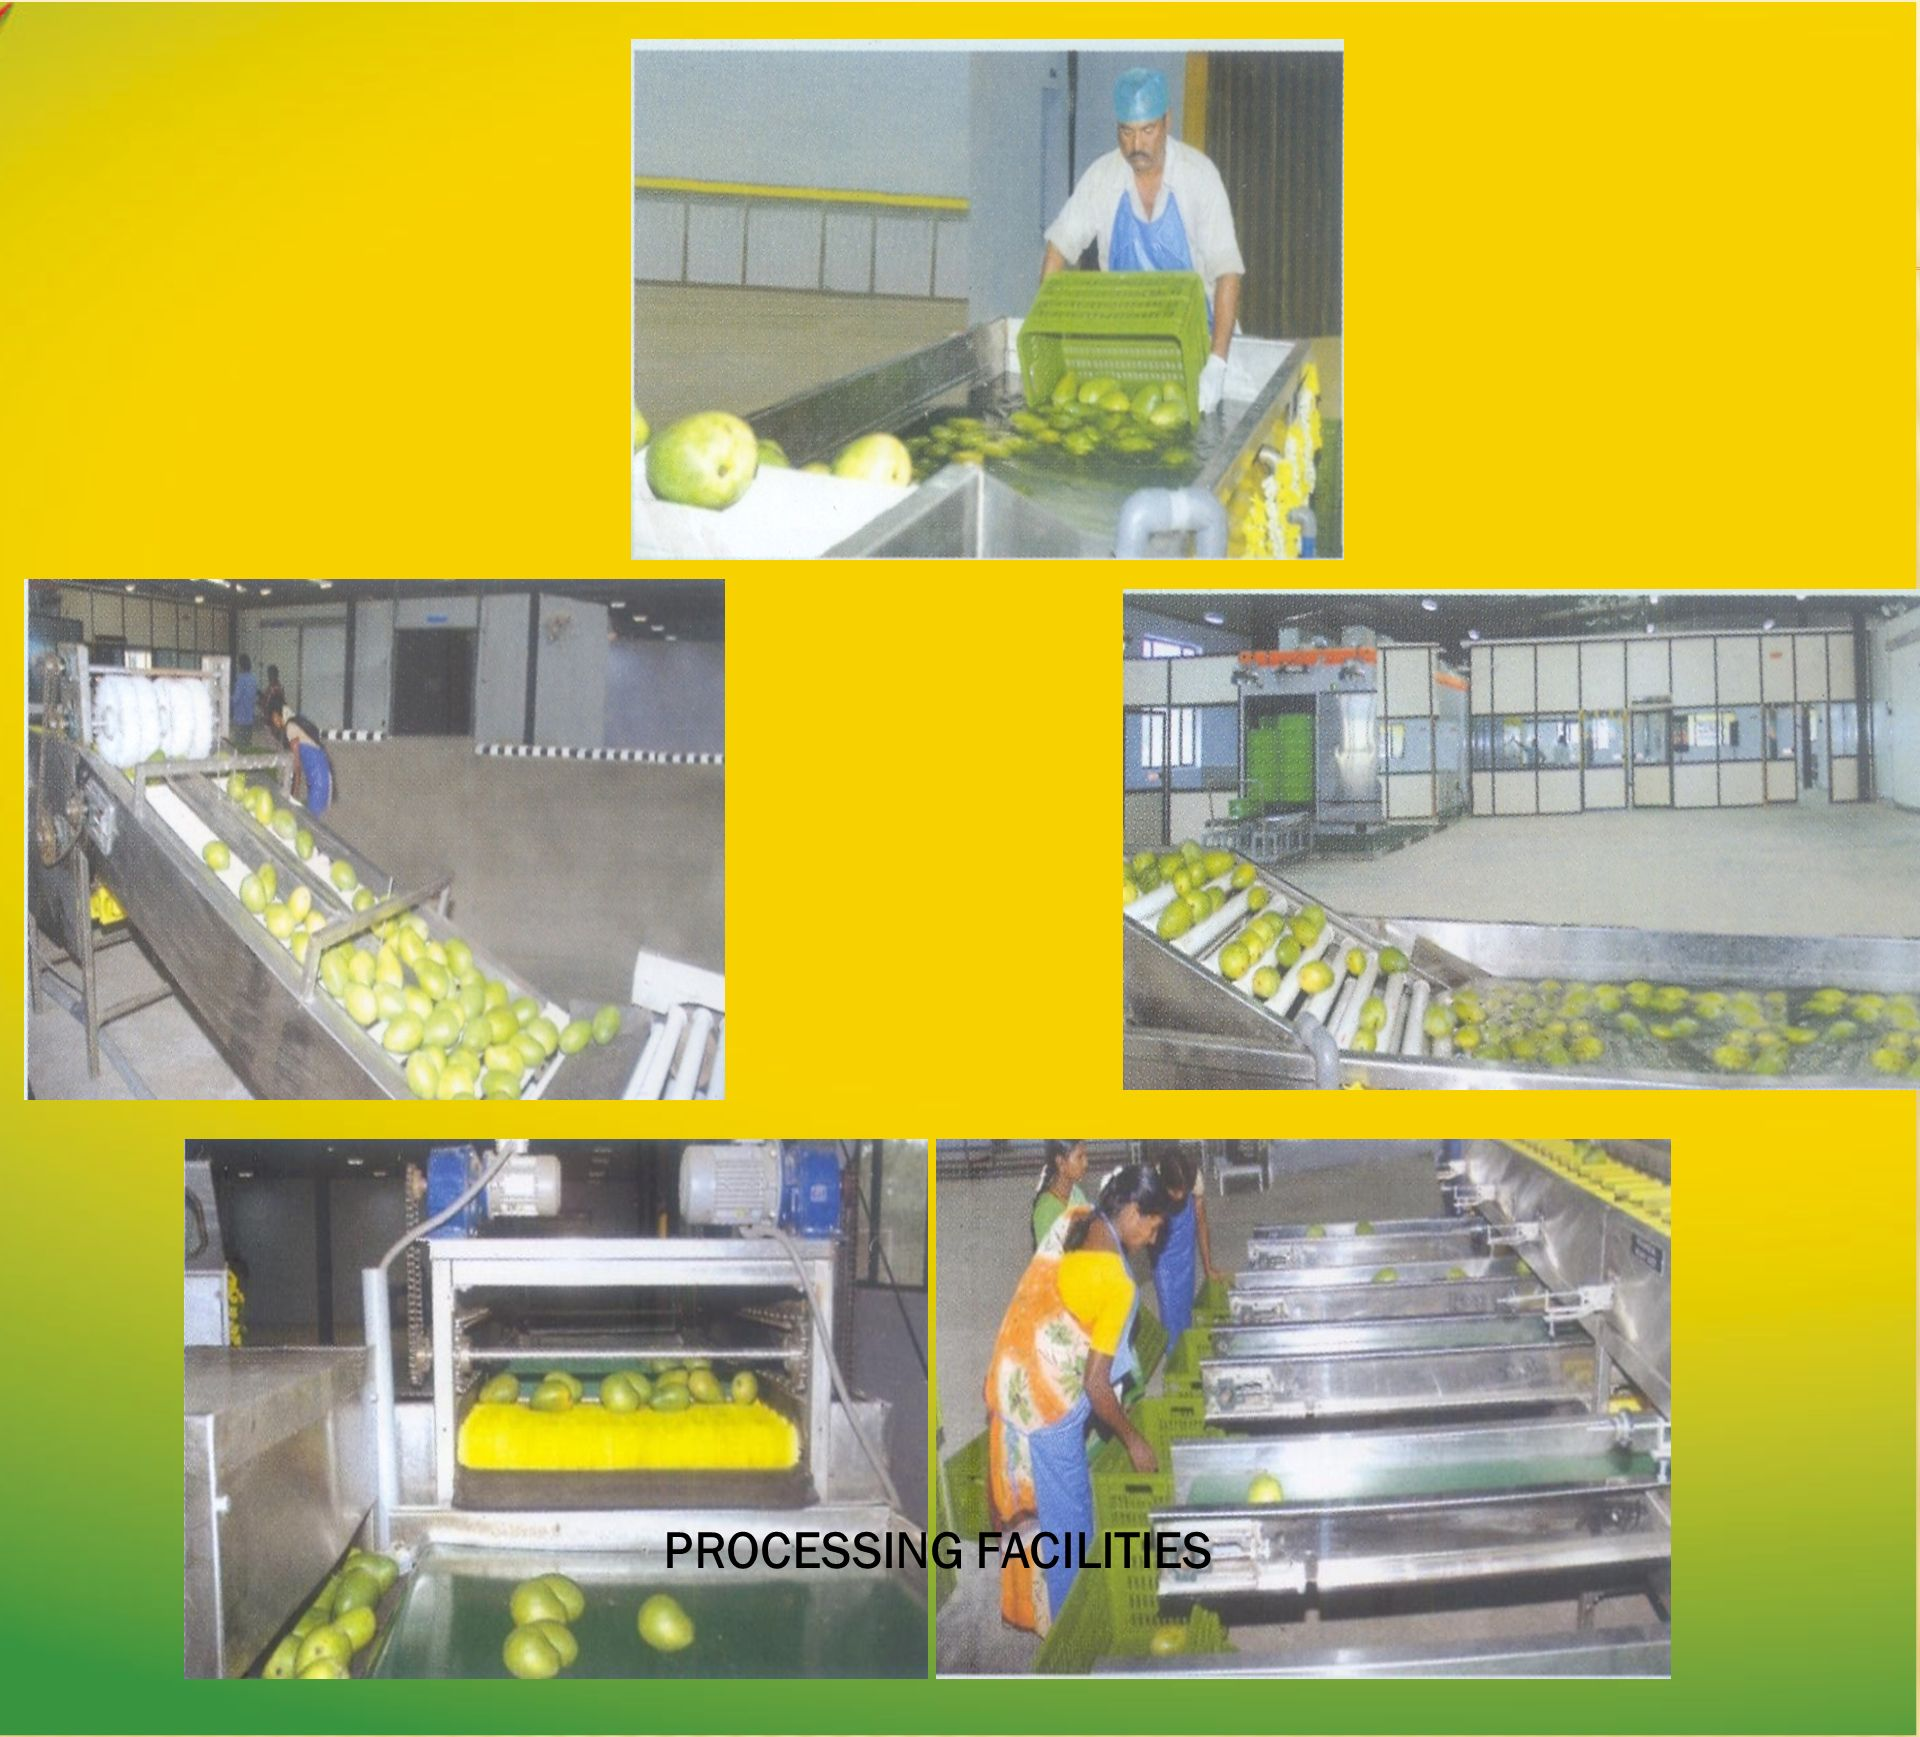 PROCESSING FACILITIES